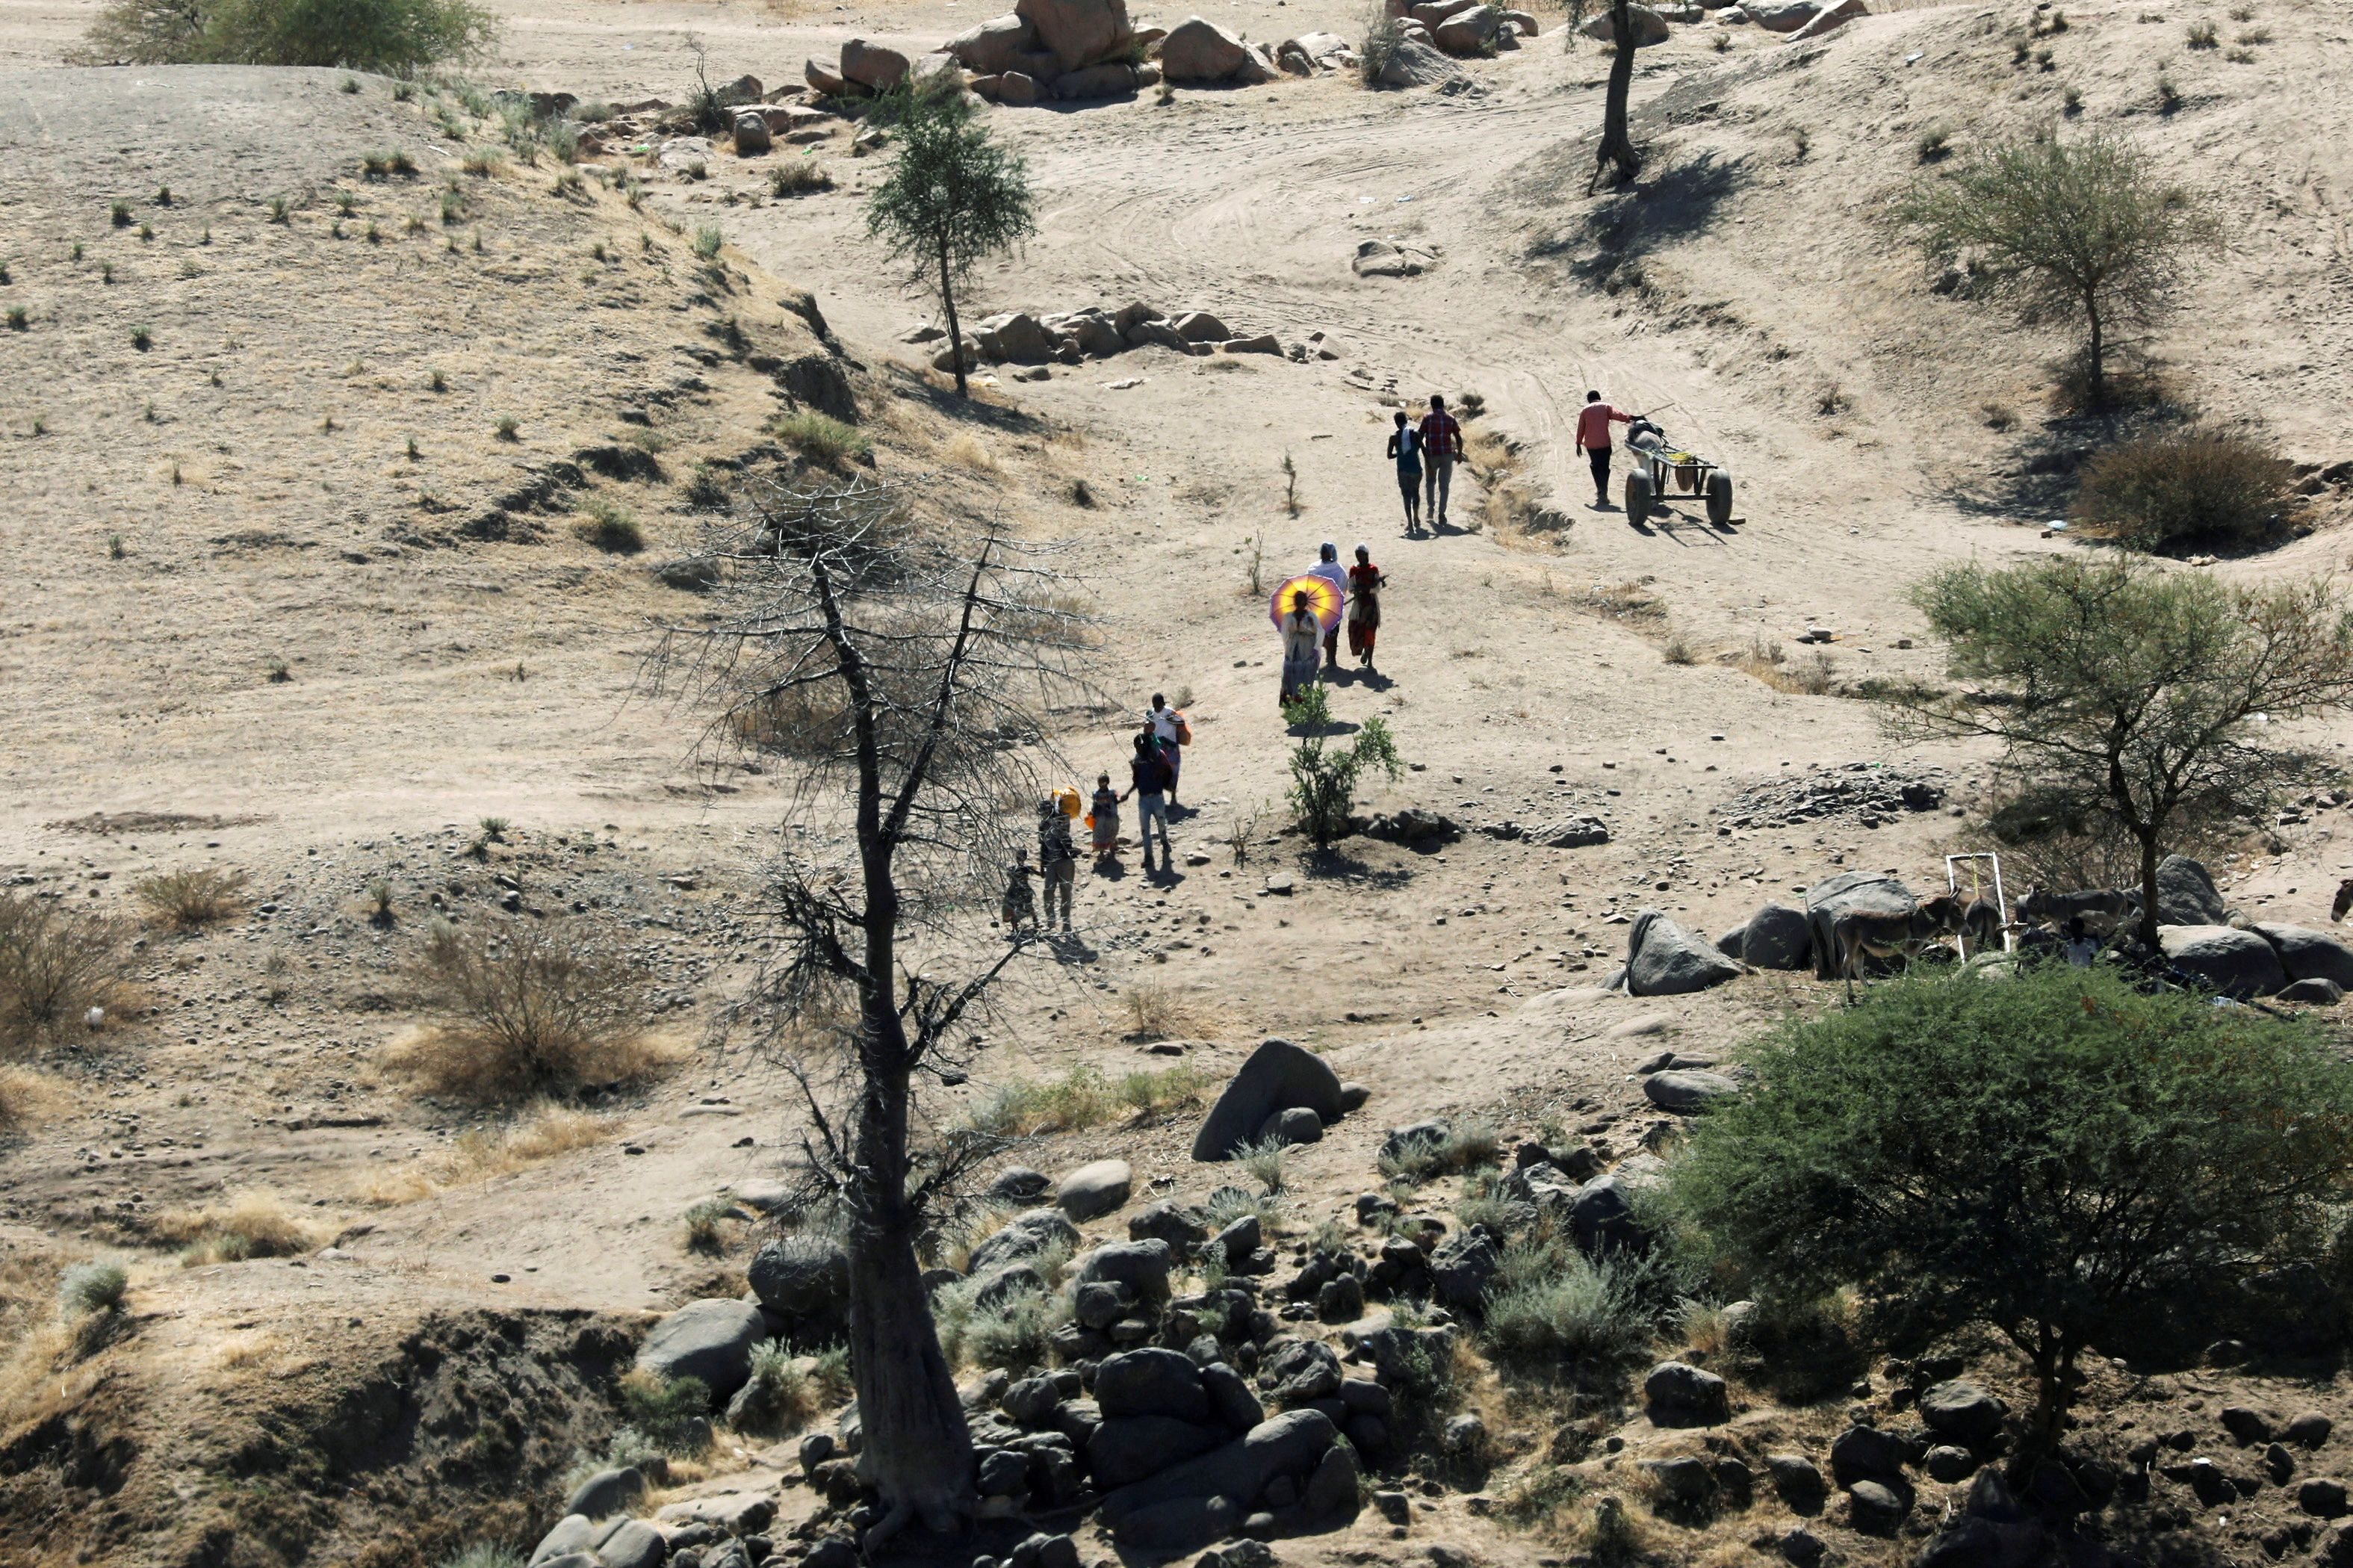 Ethiopians fleeing from the Tigray region walk towards a river to cross from Ethiopia to Sudan, near the Hamdeyat refugee transit camp, which houses refugees fleeing the fighting in the Tigray region, on the border in Sudan, December 1, 2020. REUTERS/Baz Ratner/File Photo